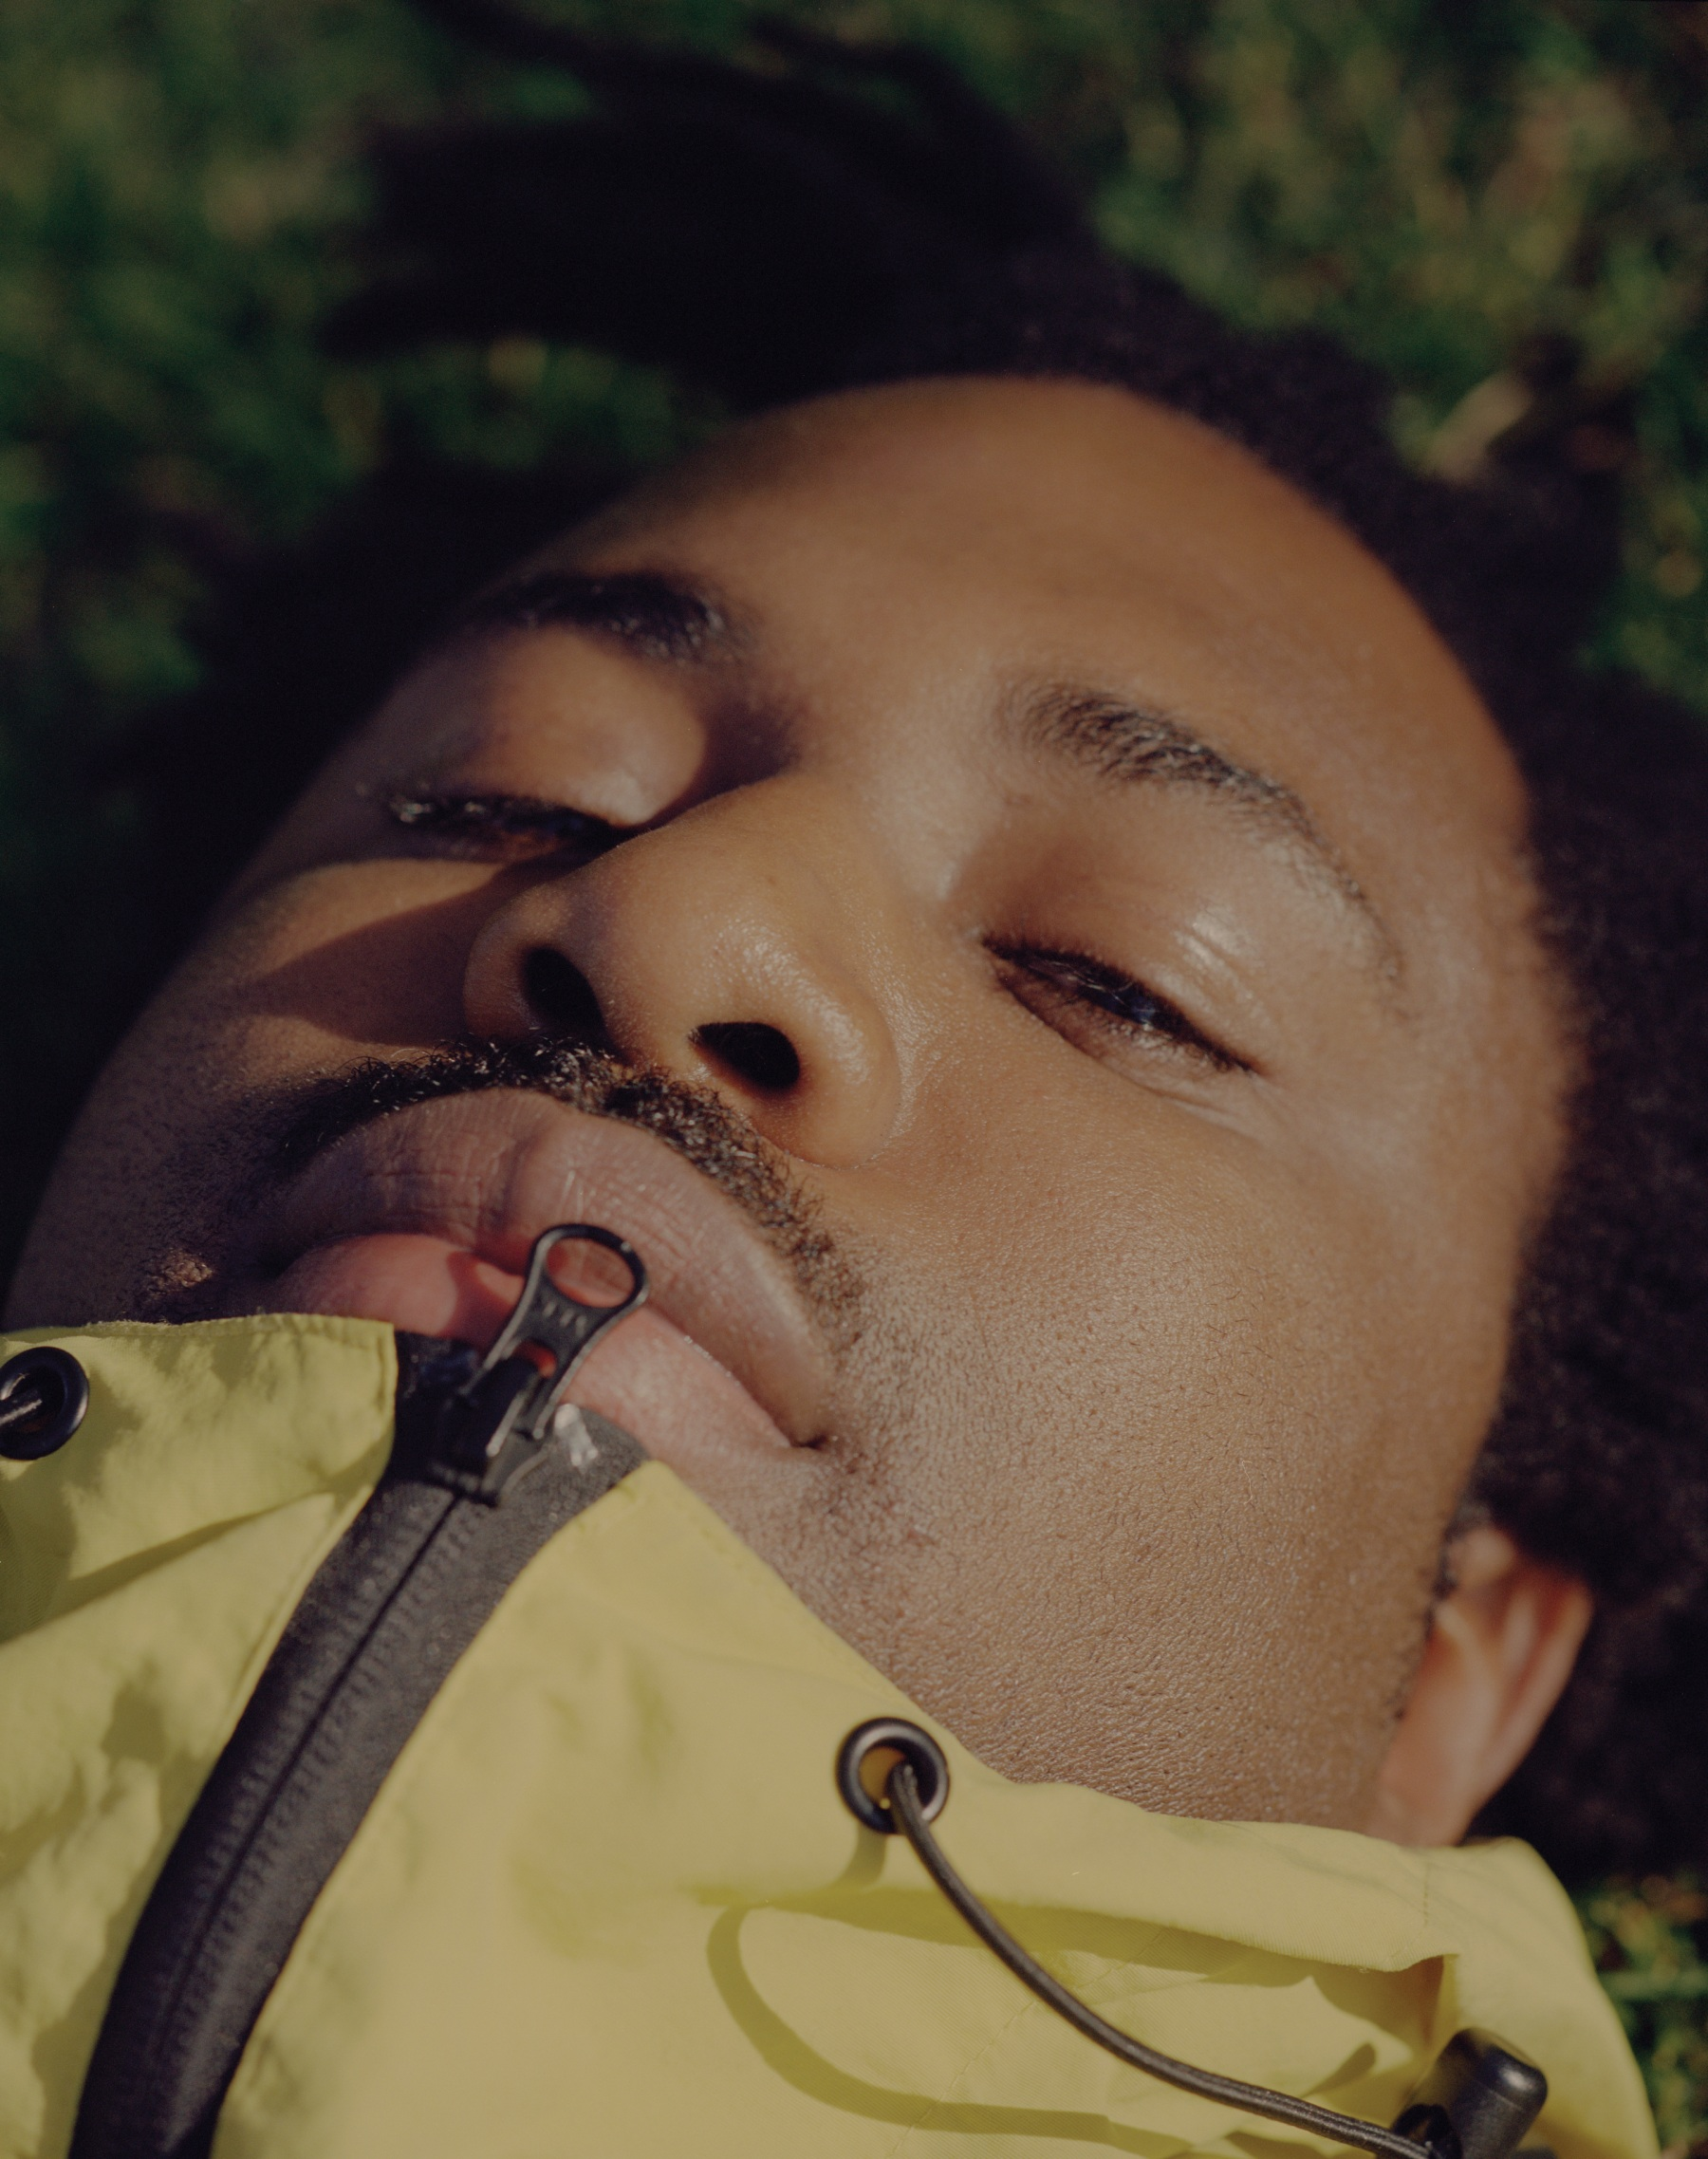 sampha-cover-story-interview-1.jpg